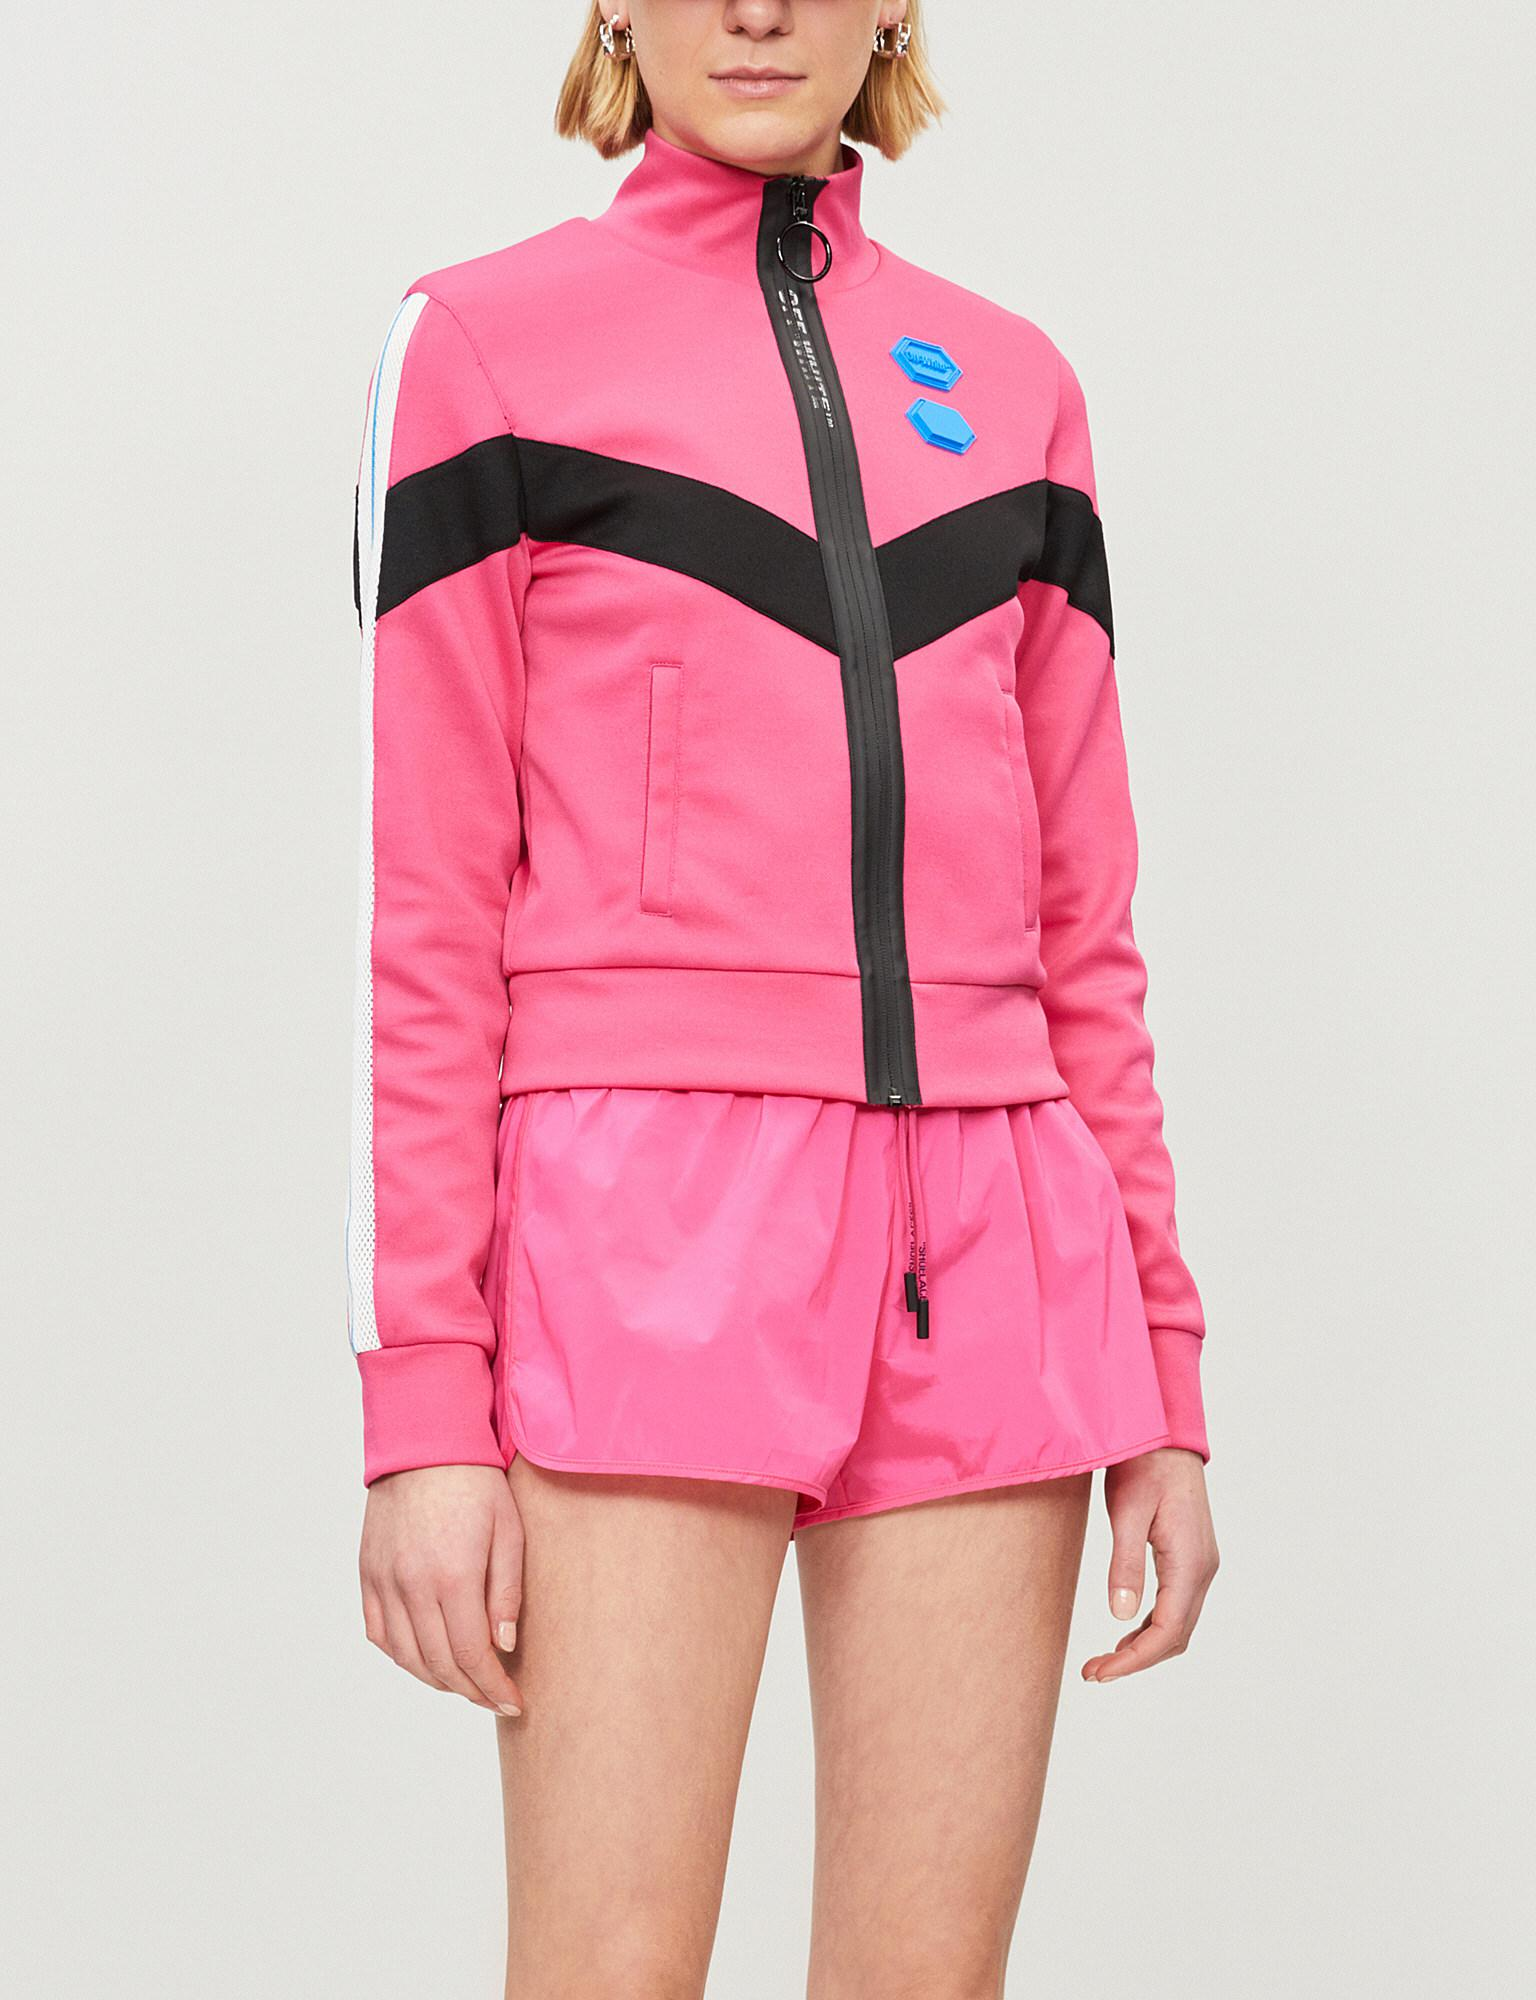 6ea77369b1d0 Lyst - Off-White C O Virgil Abloh Logo-patch Shell Shorts in Pink